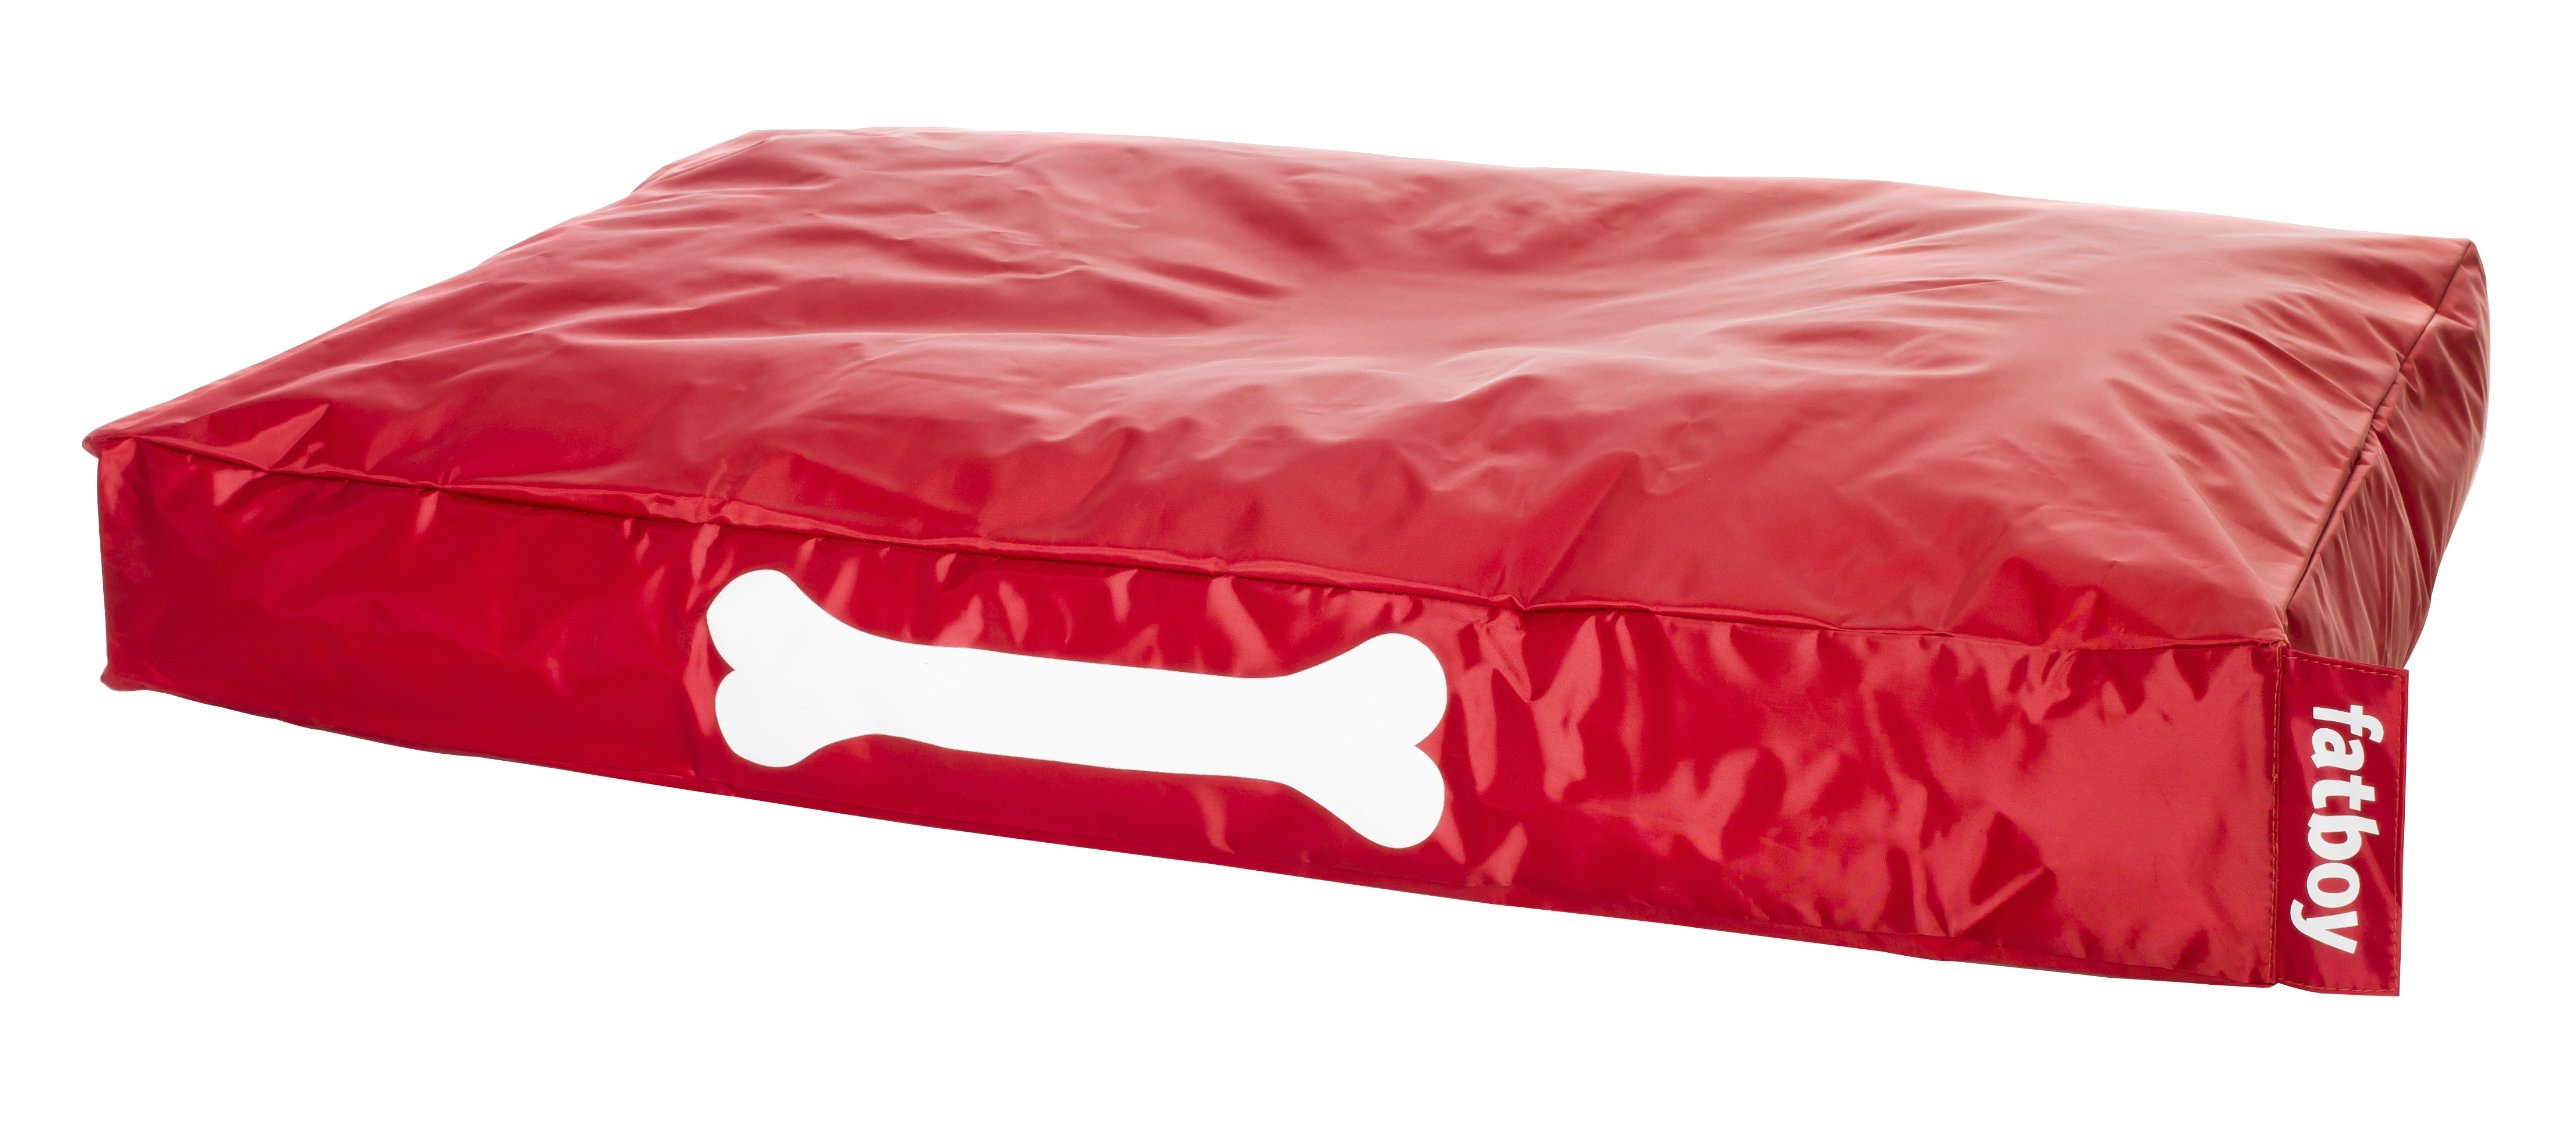 Fatboy Doggielounge, large dog bed - red